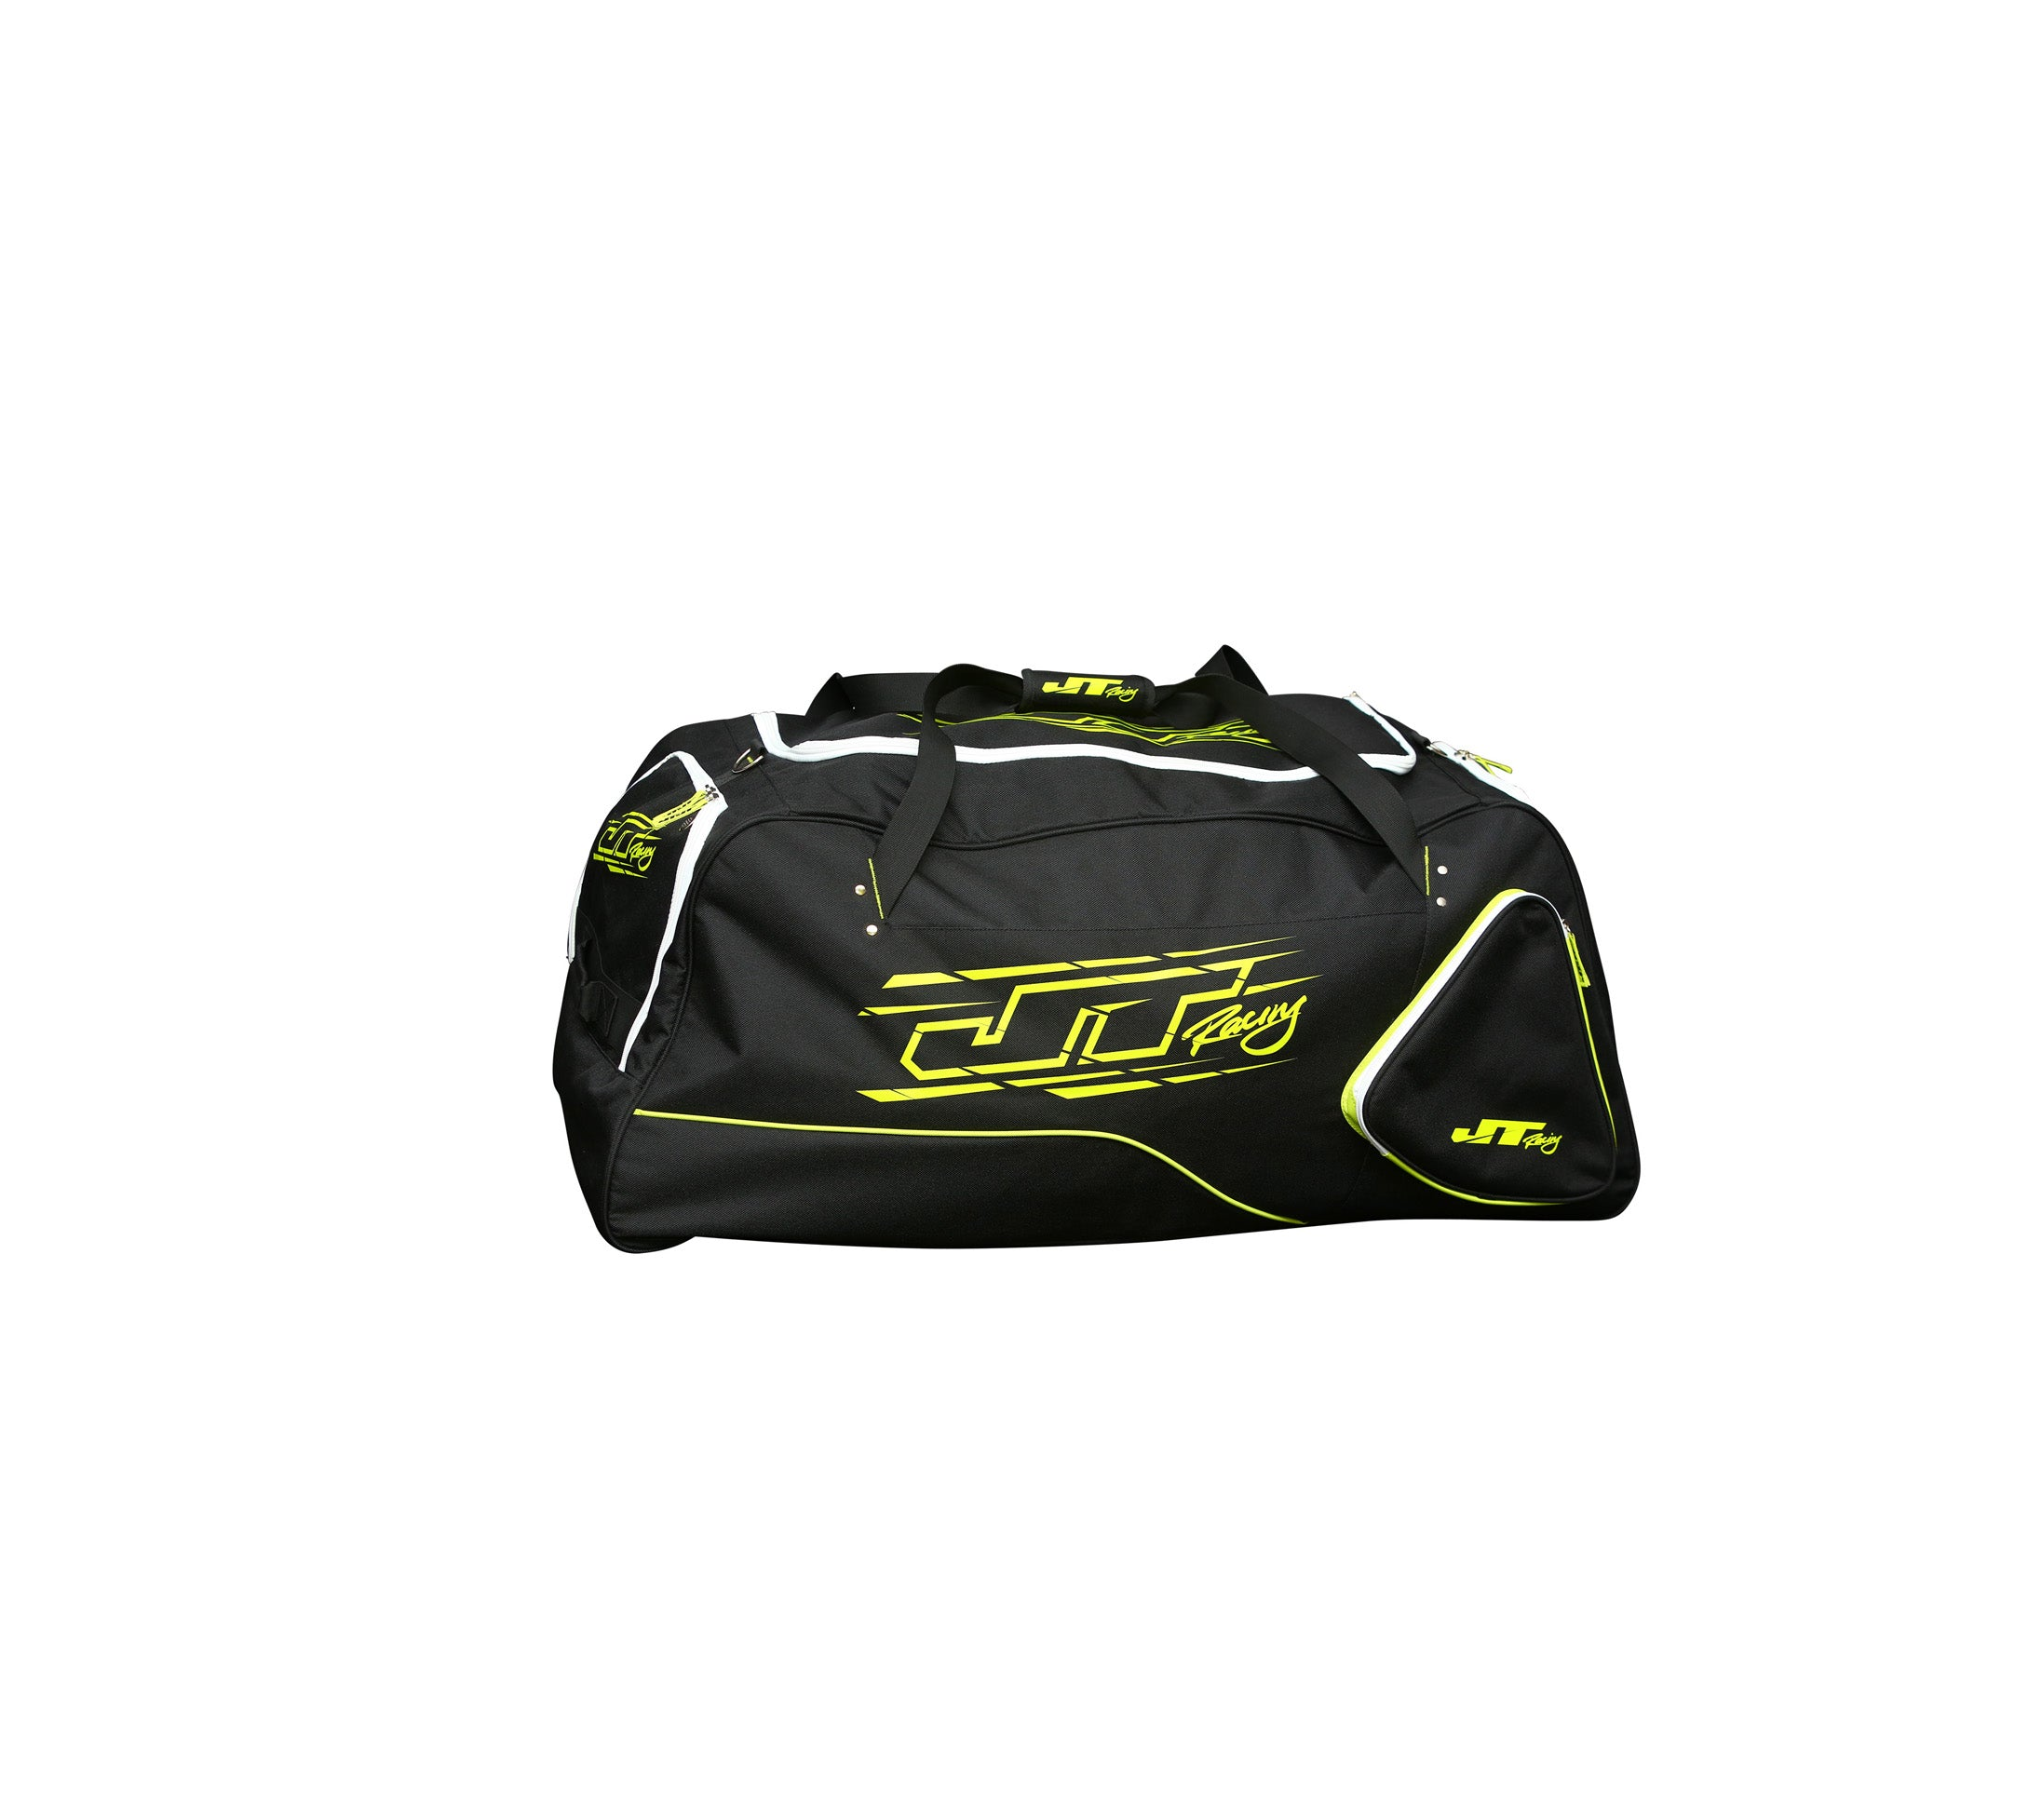 JT Racing Slasher Overnight Bag